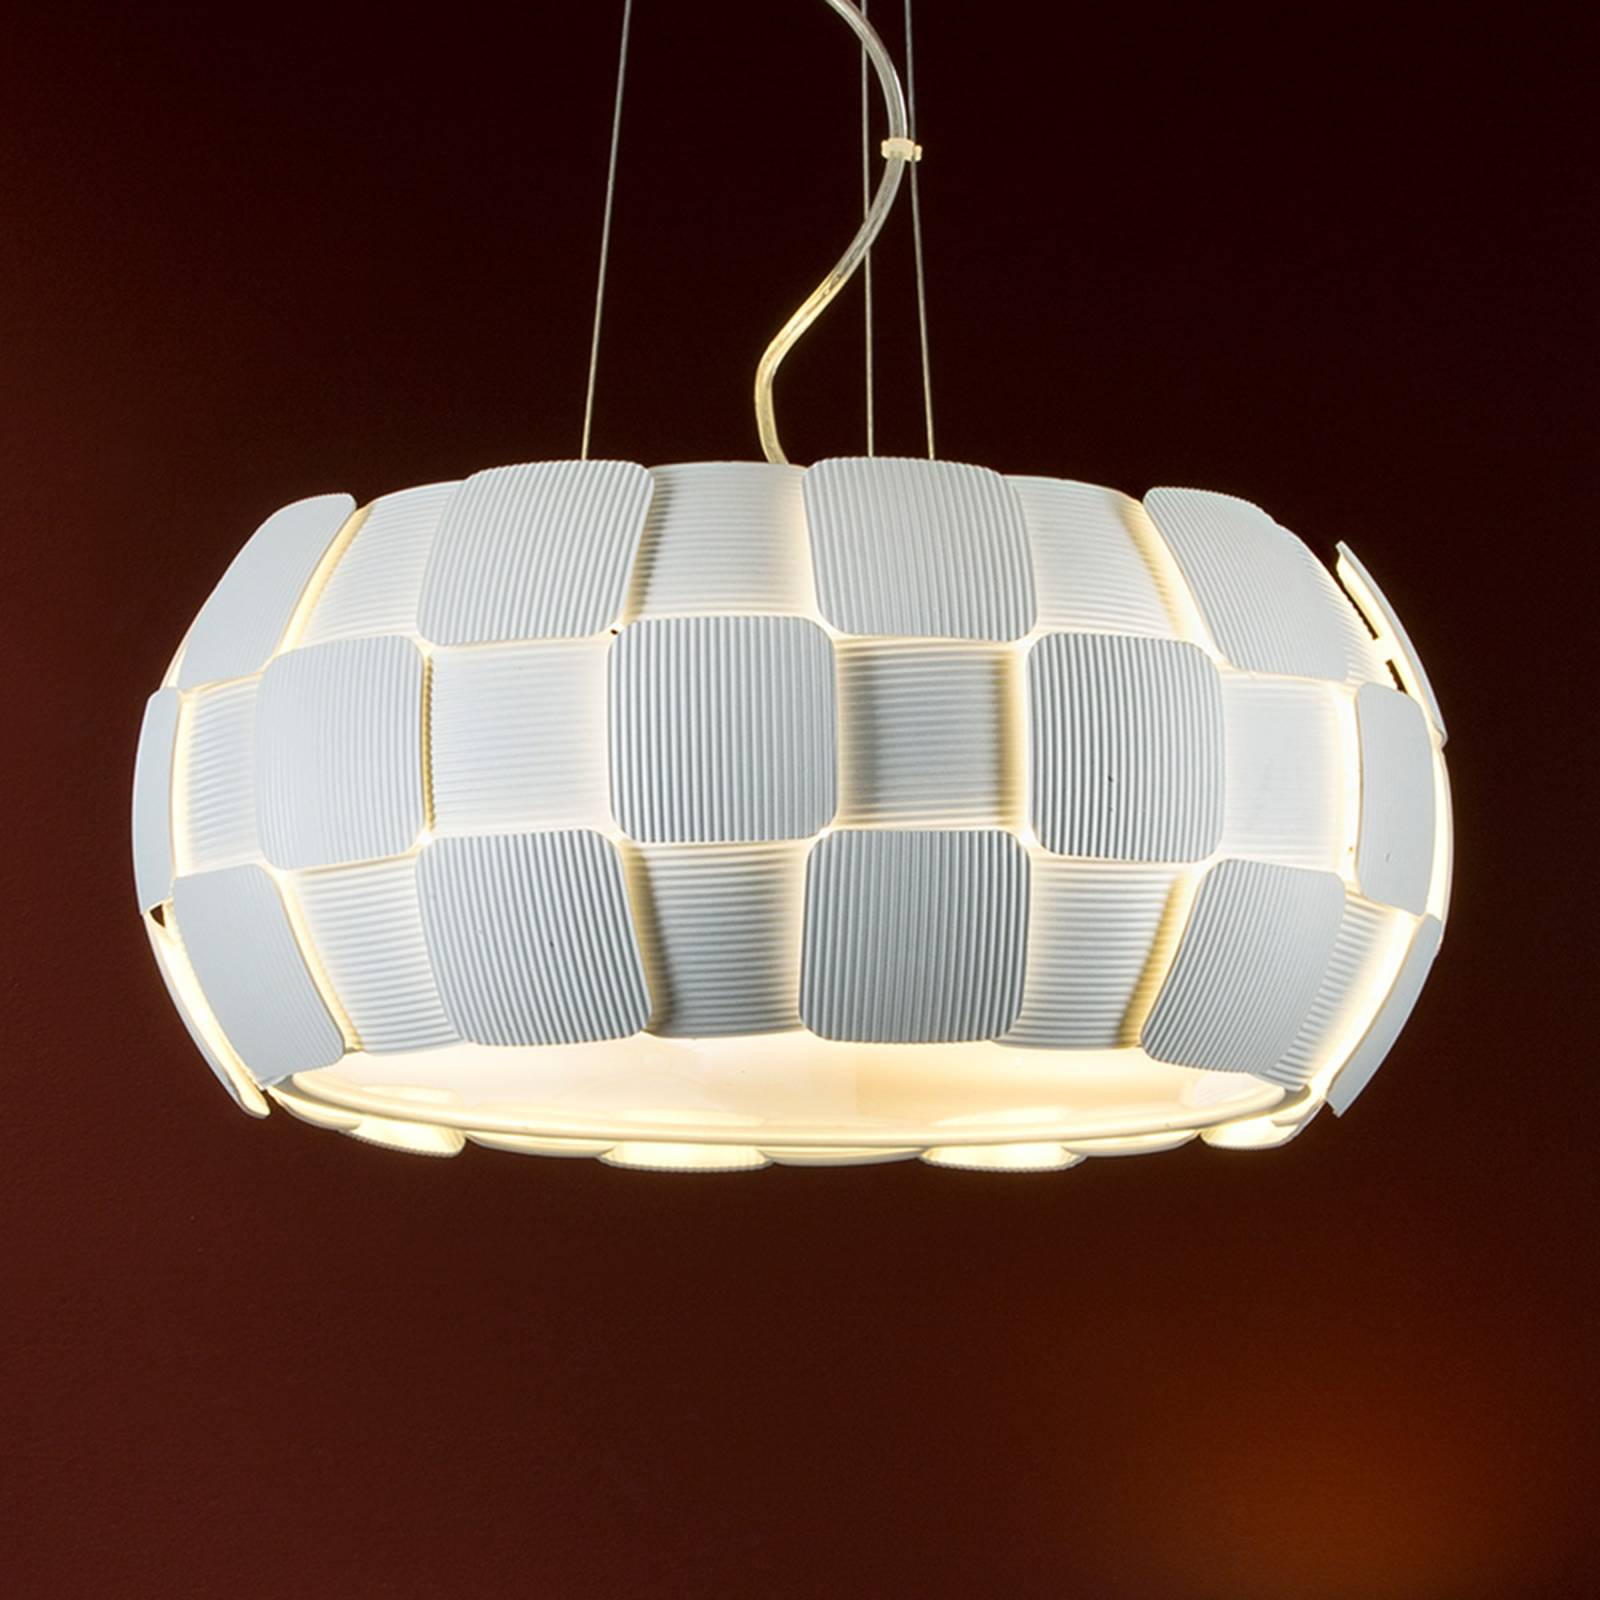 White hanging light Quios with a great lampshade from Schuller